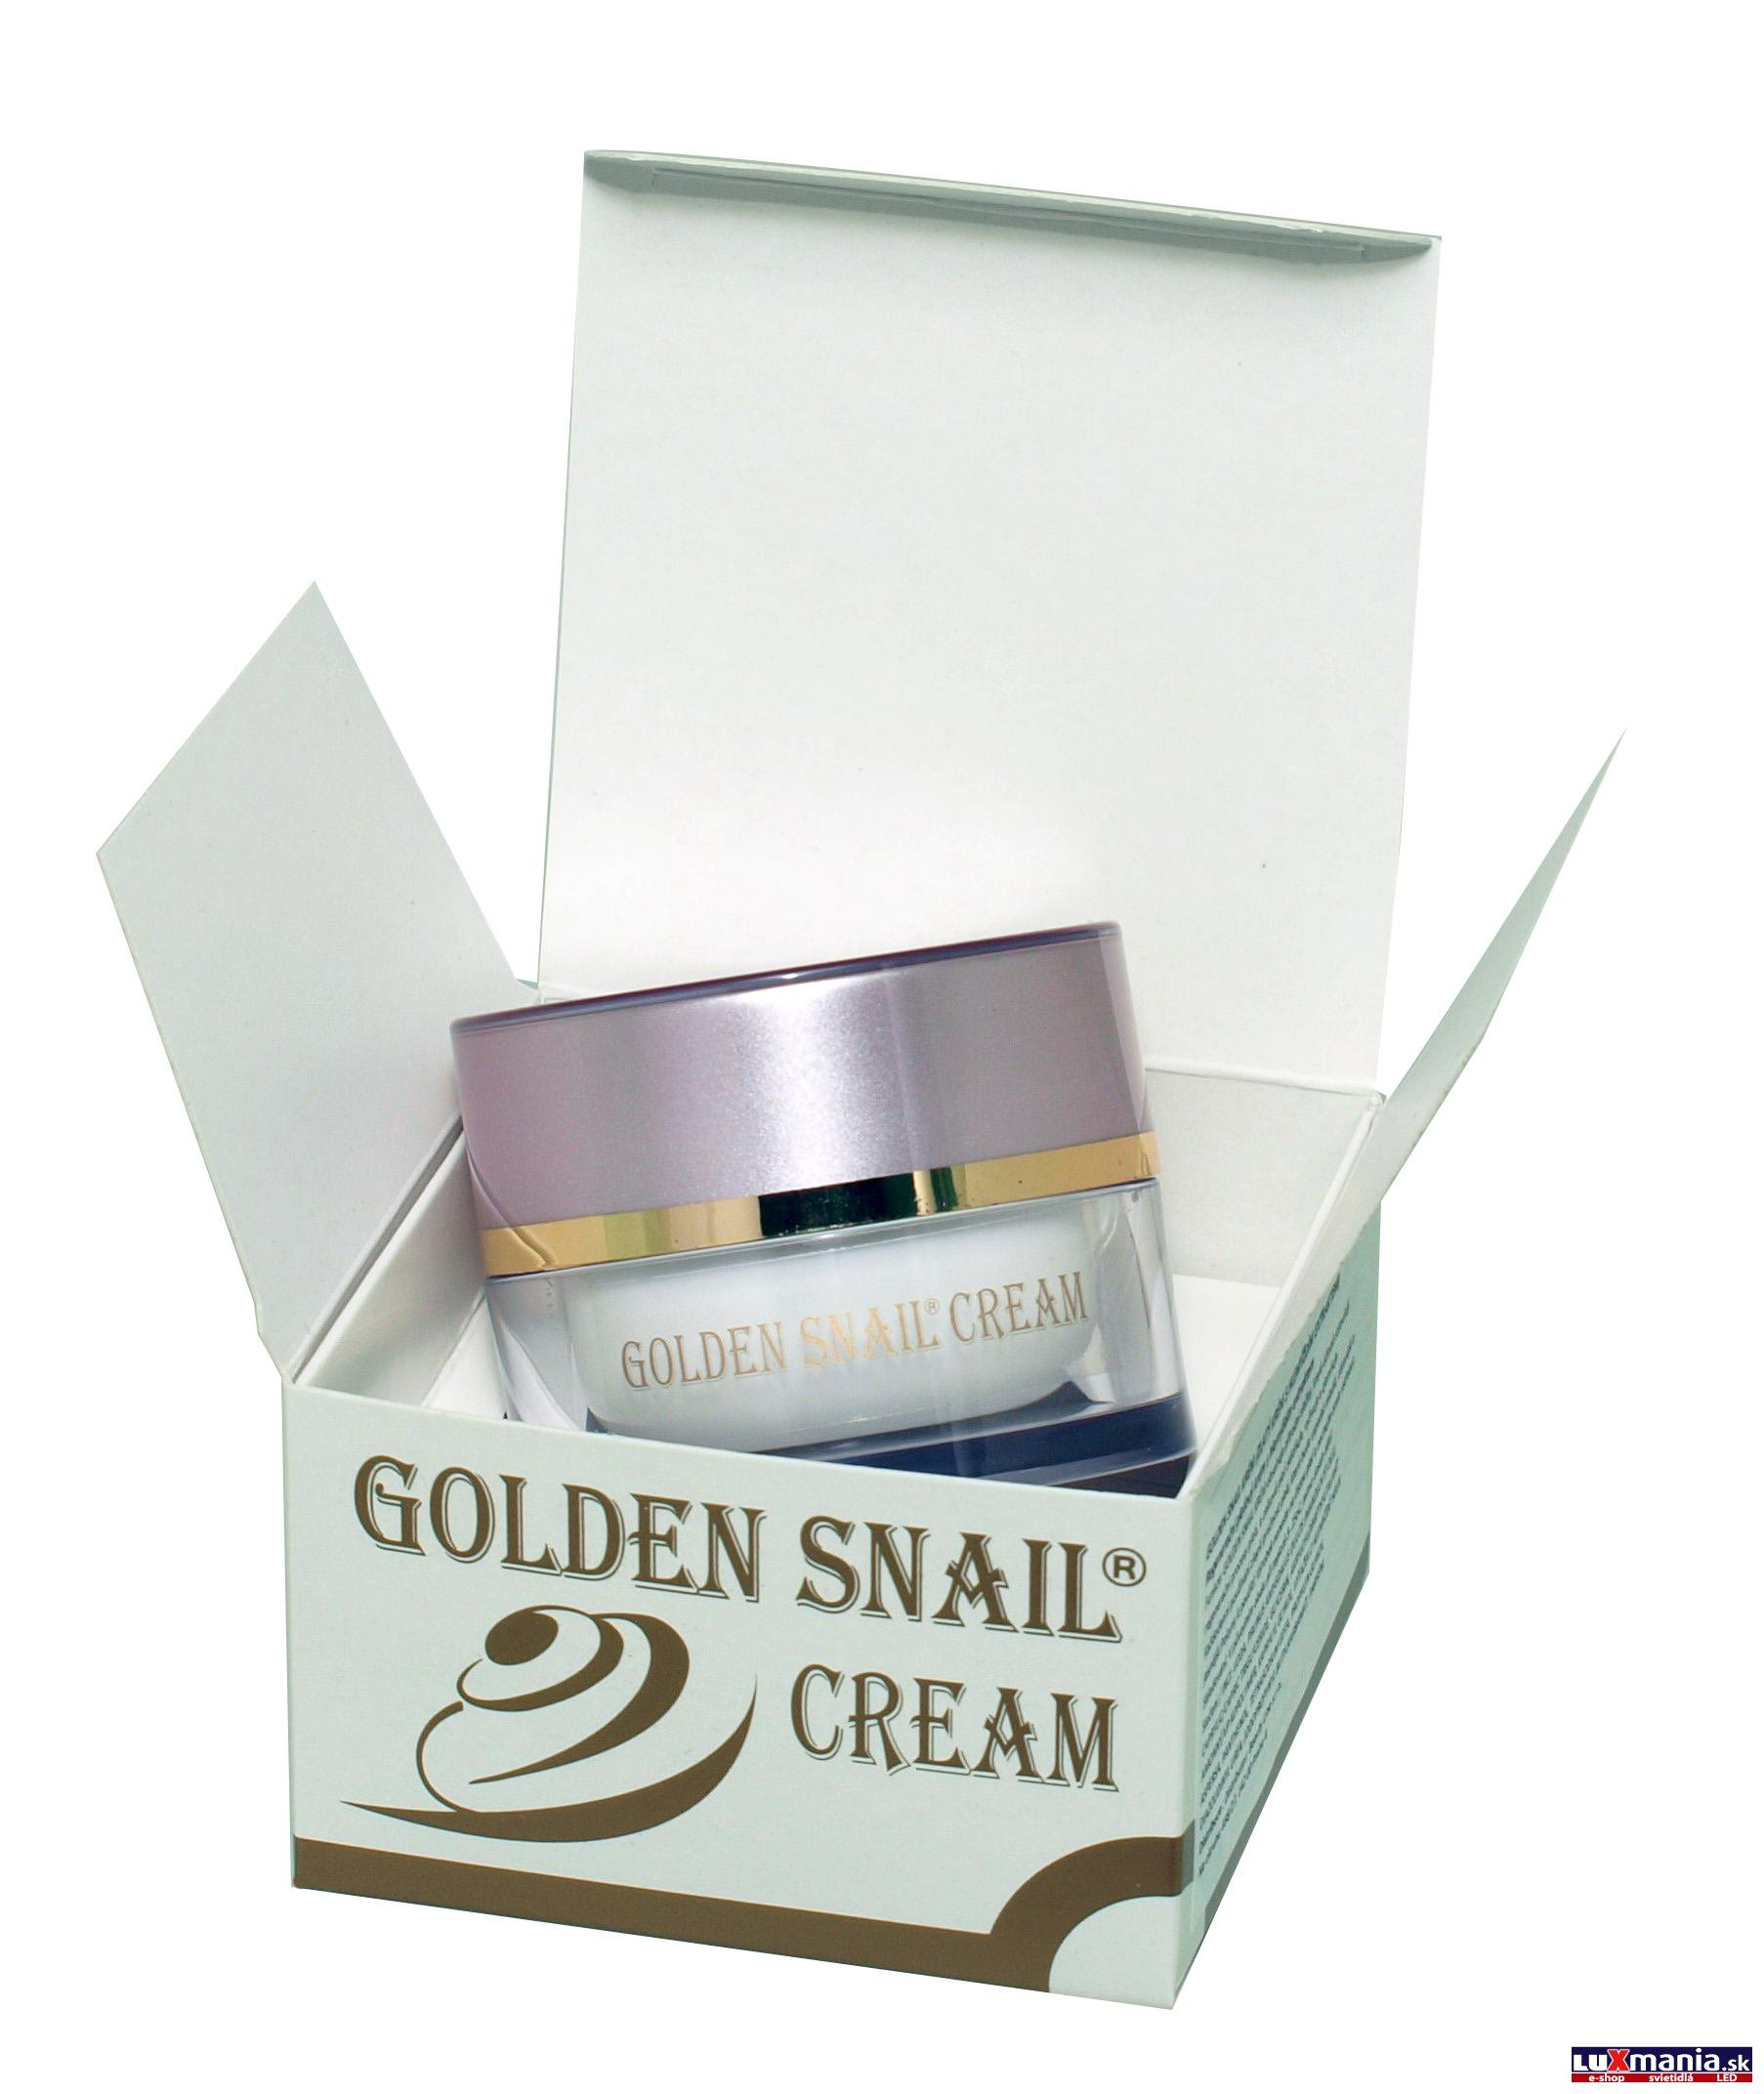 GOLDEN SNAIL CREAM